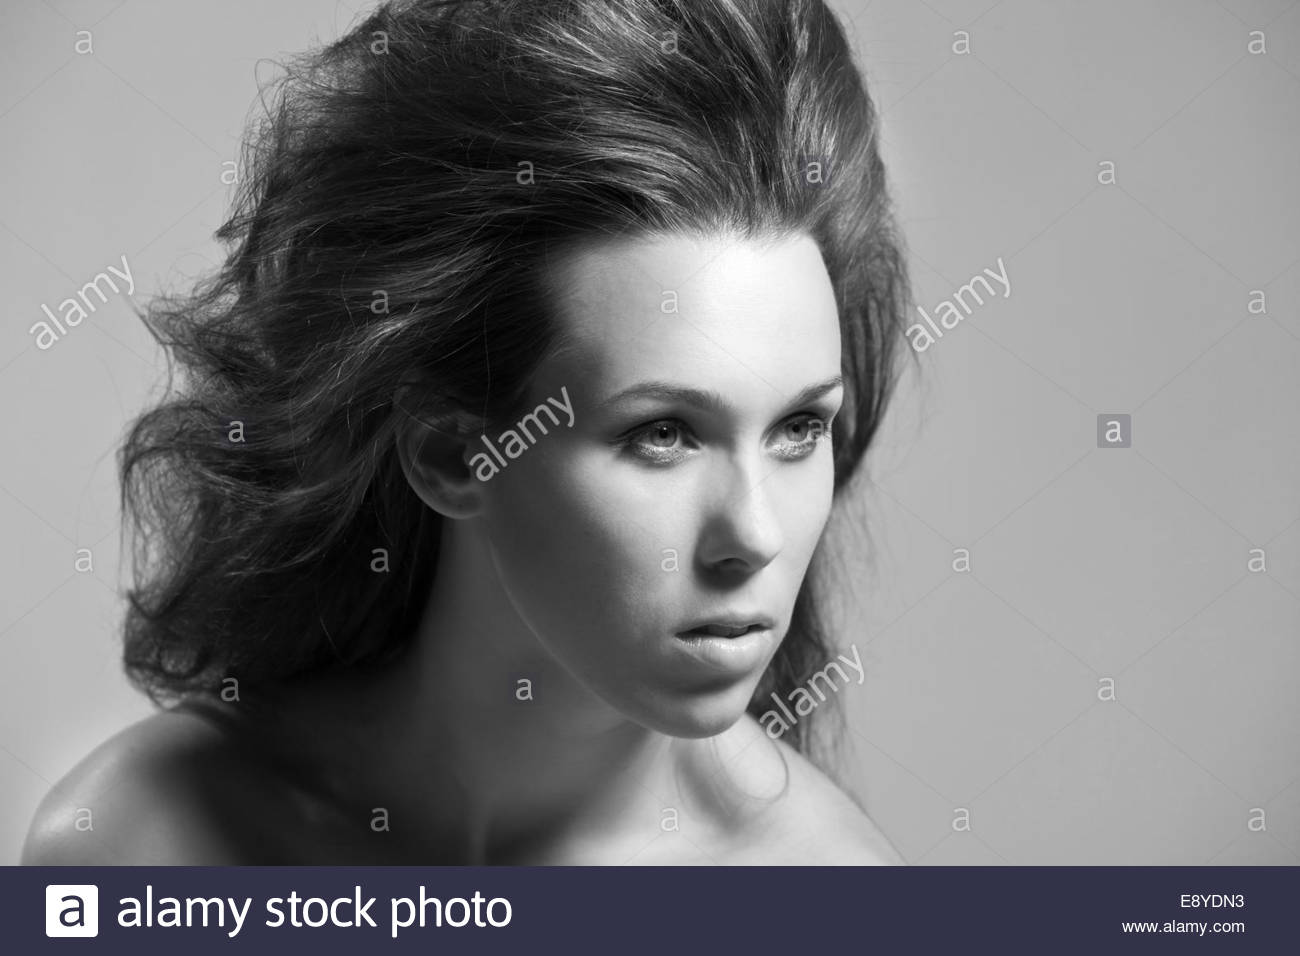 Wilde Frisur Stockfoto Bild 74362207 Alamy